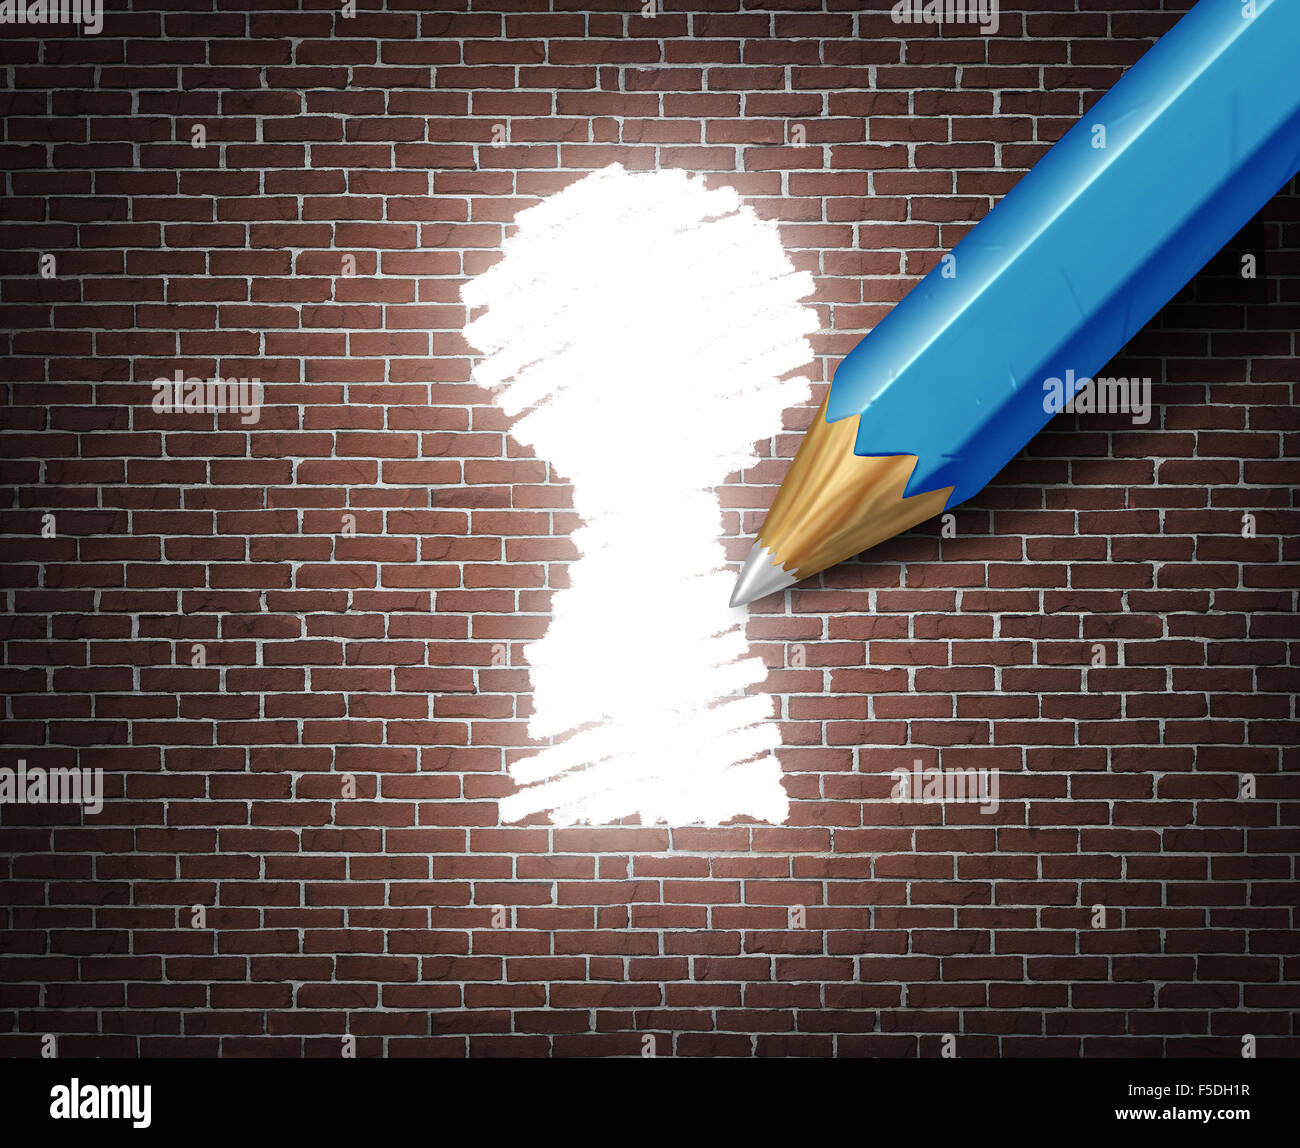 Business possibility idea concept as a white tipped pencil drawing a keyhole shape on a brick wall as an access - Stock Image